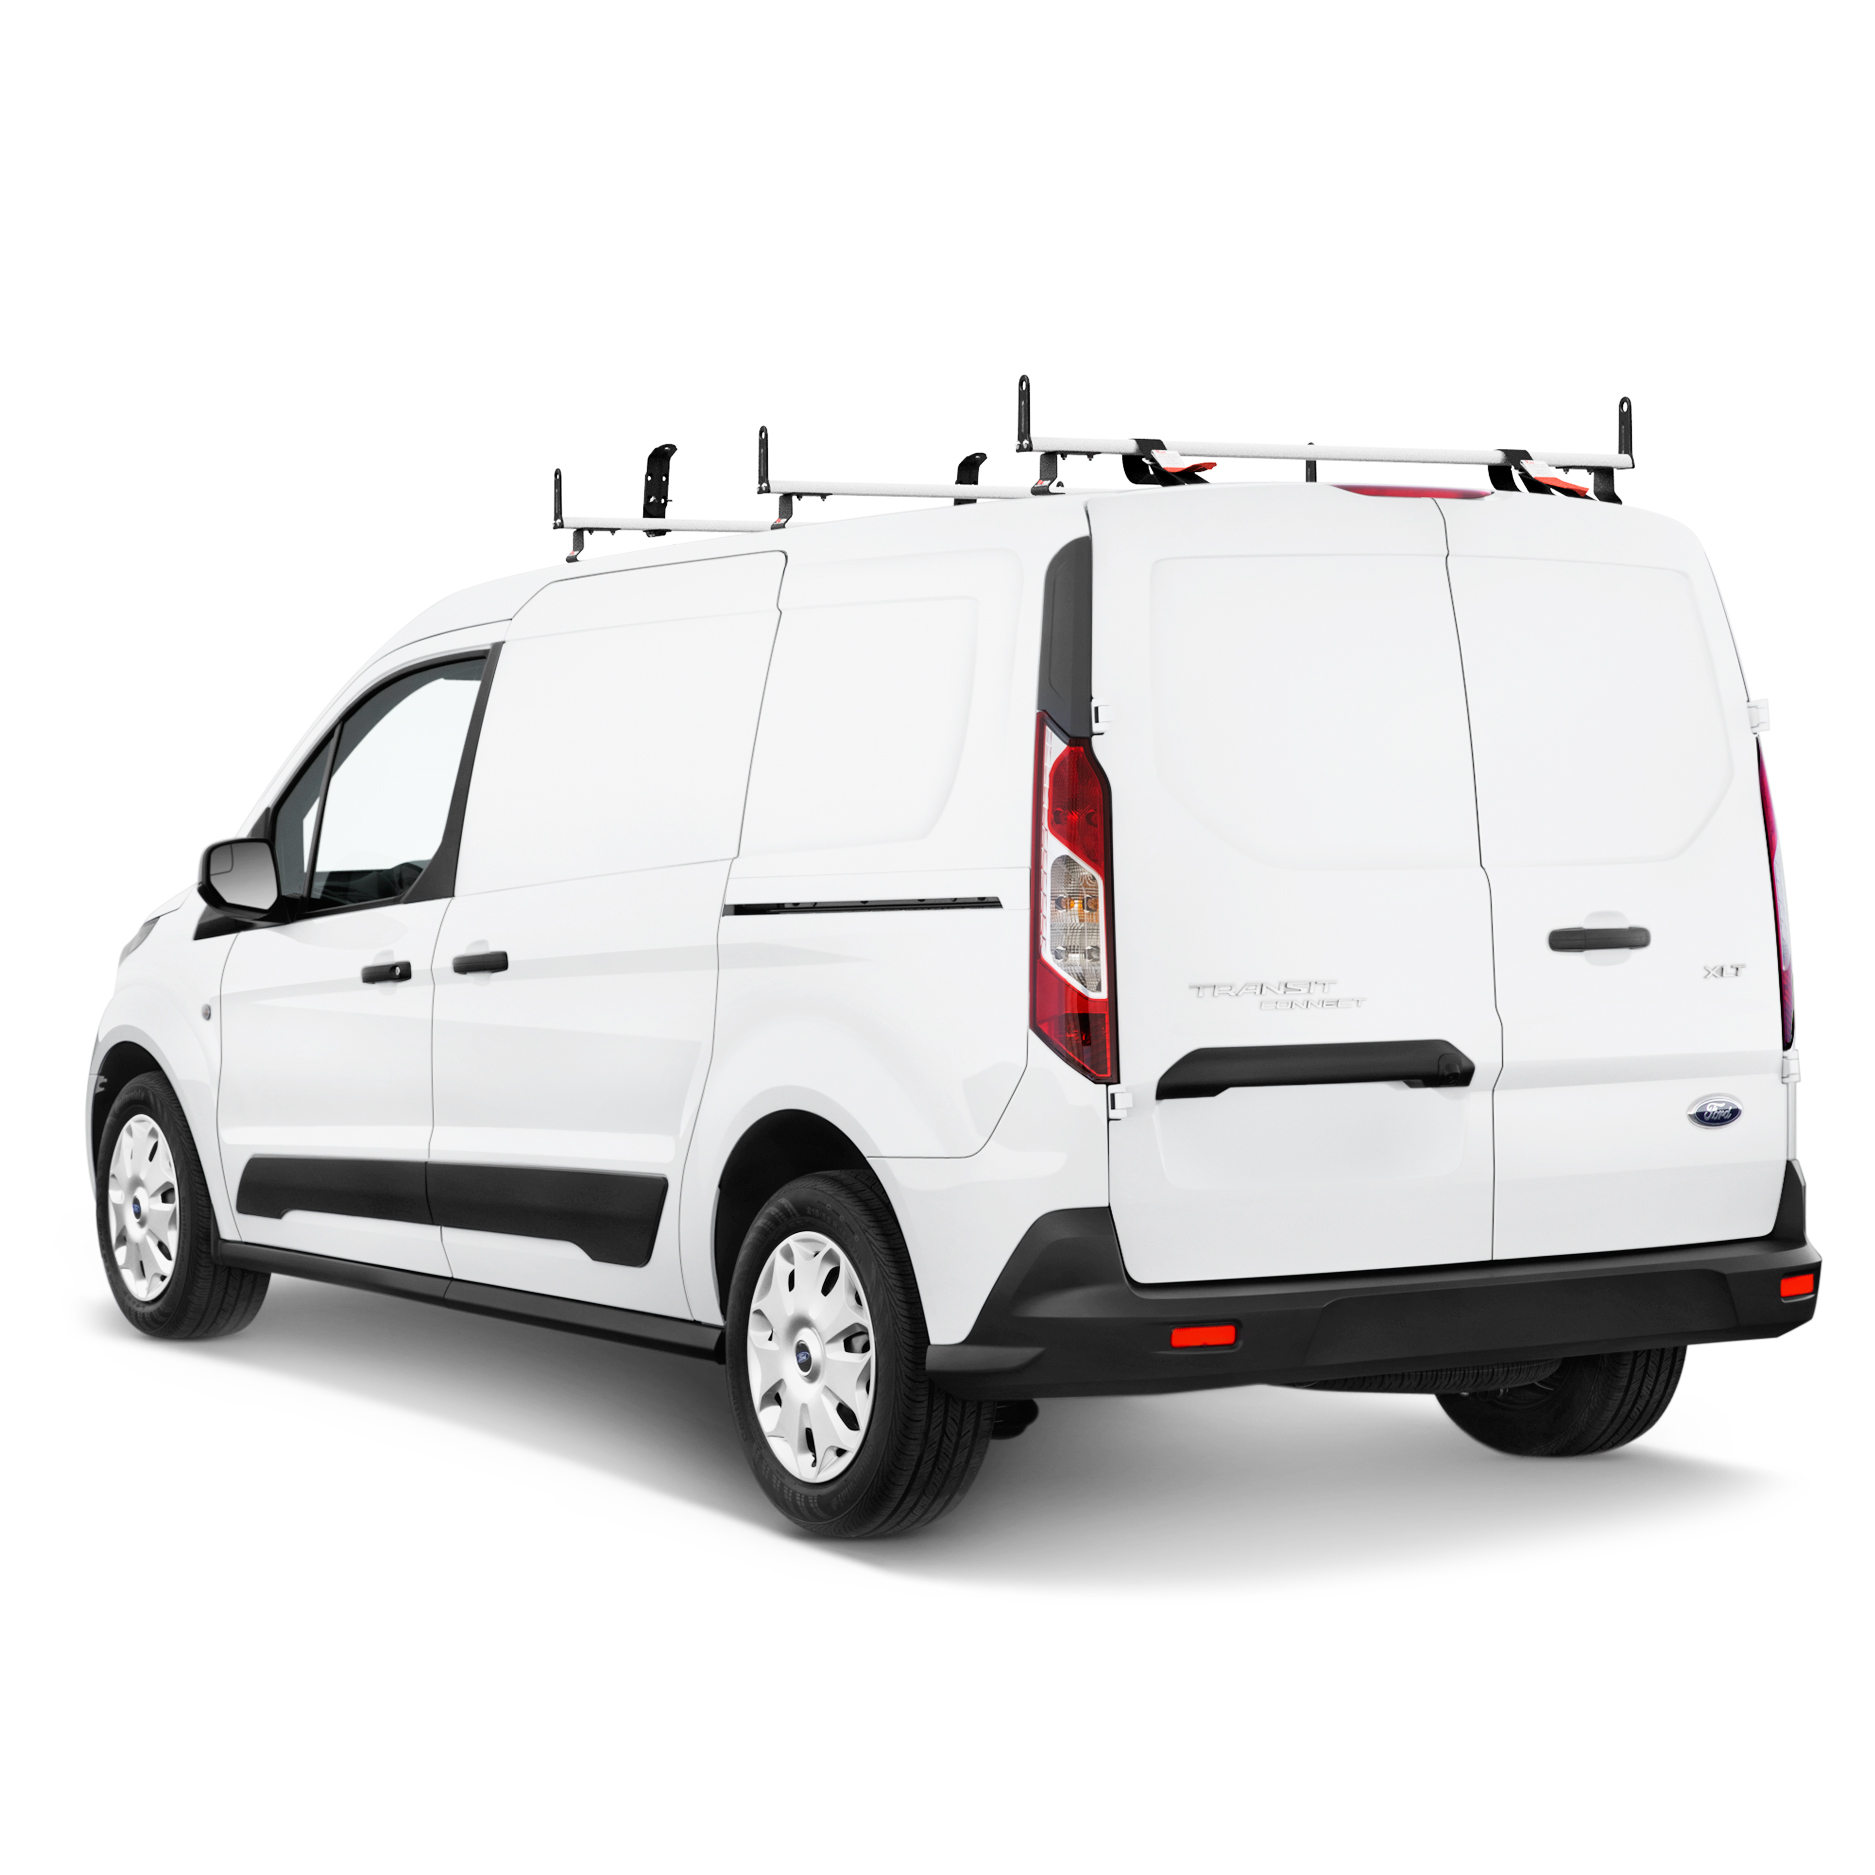 j series ladder roof rack for ford transit connect 2014 on